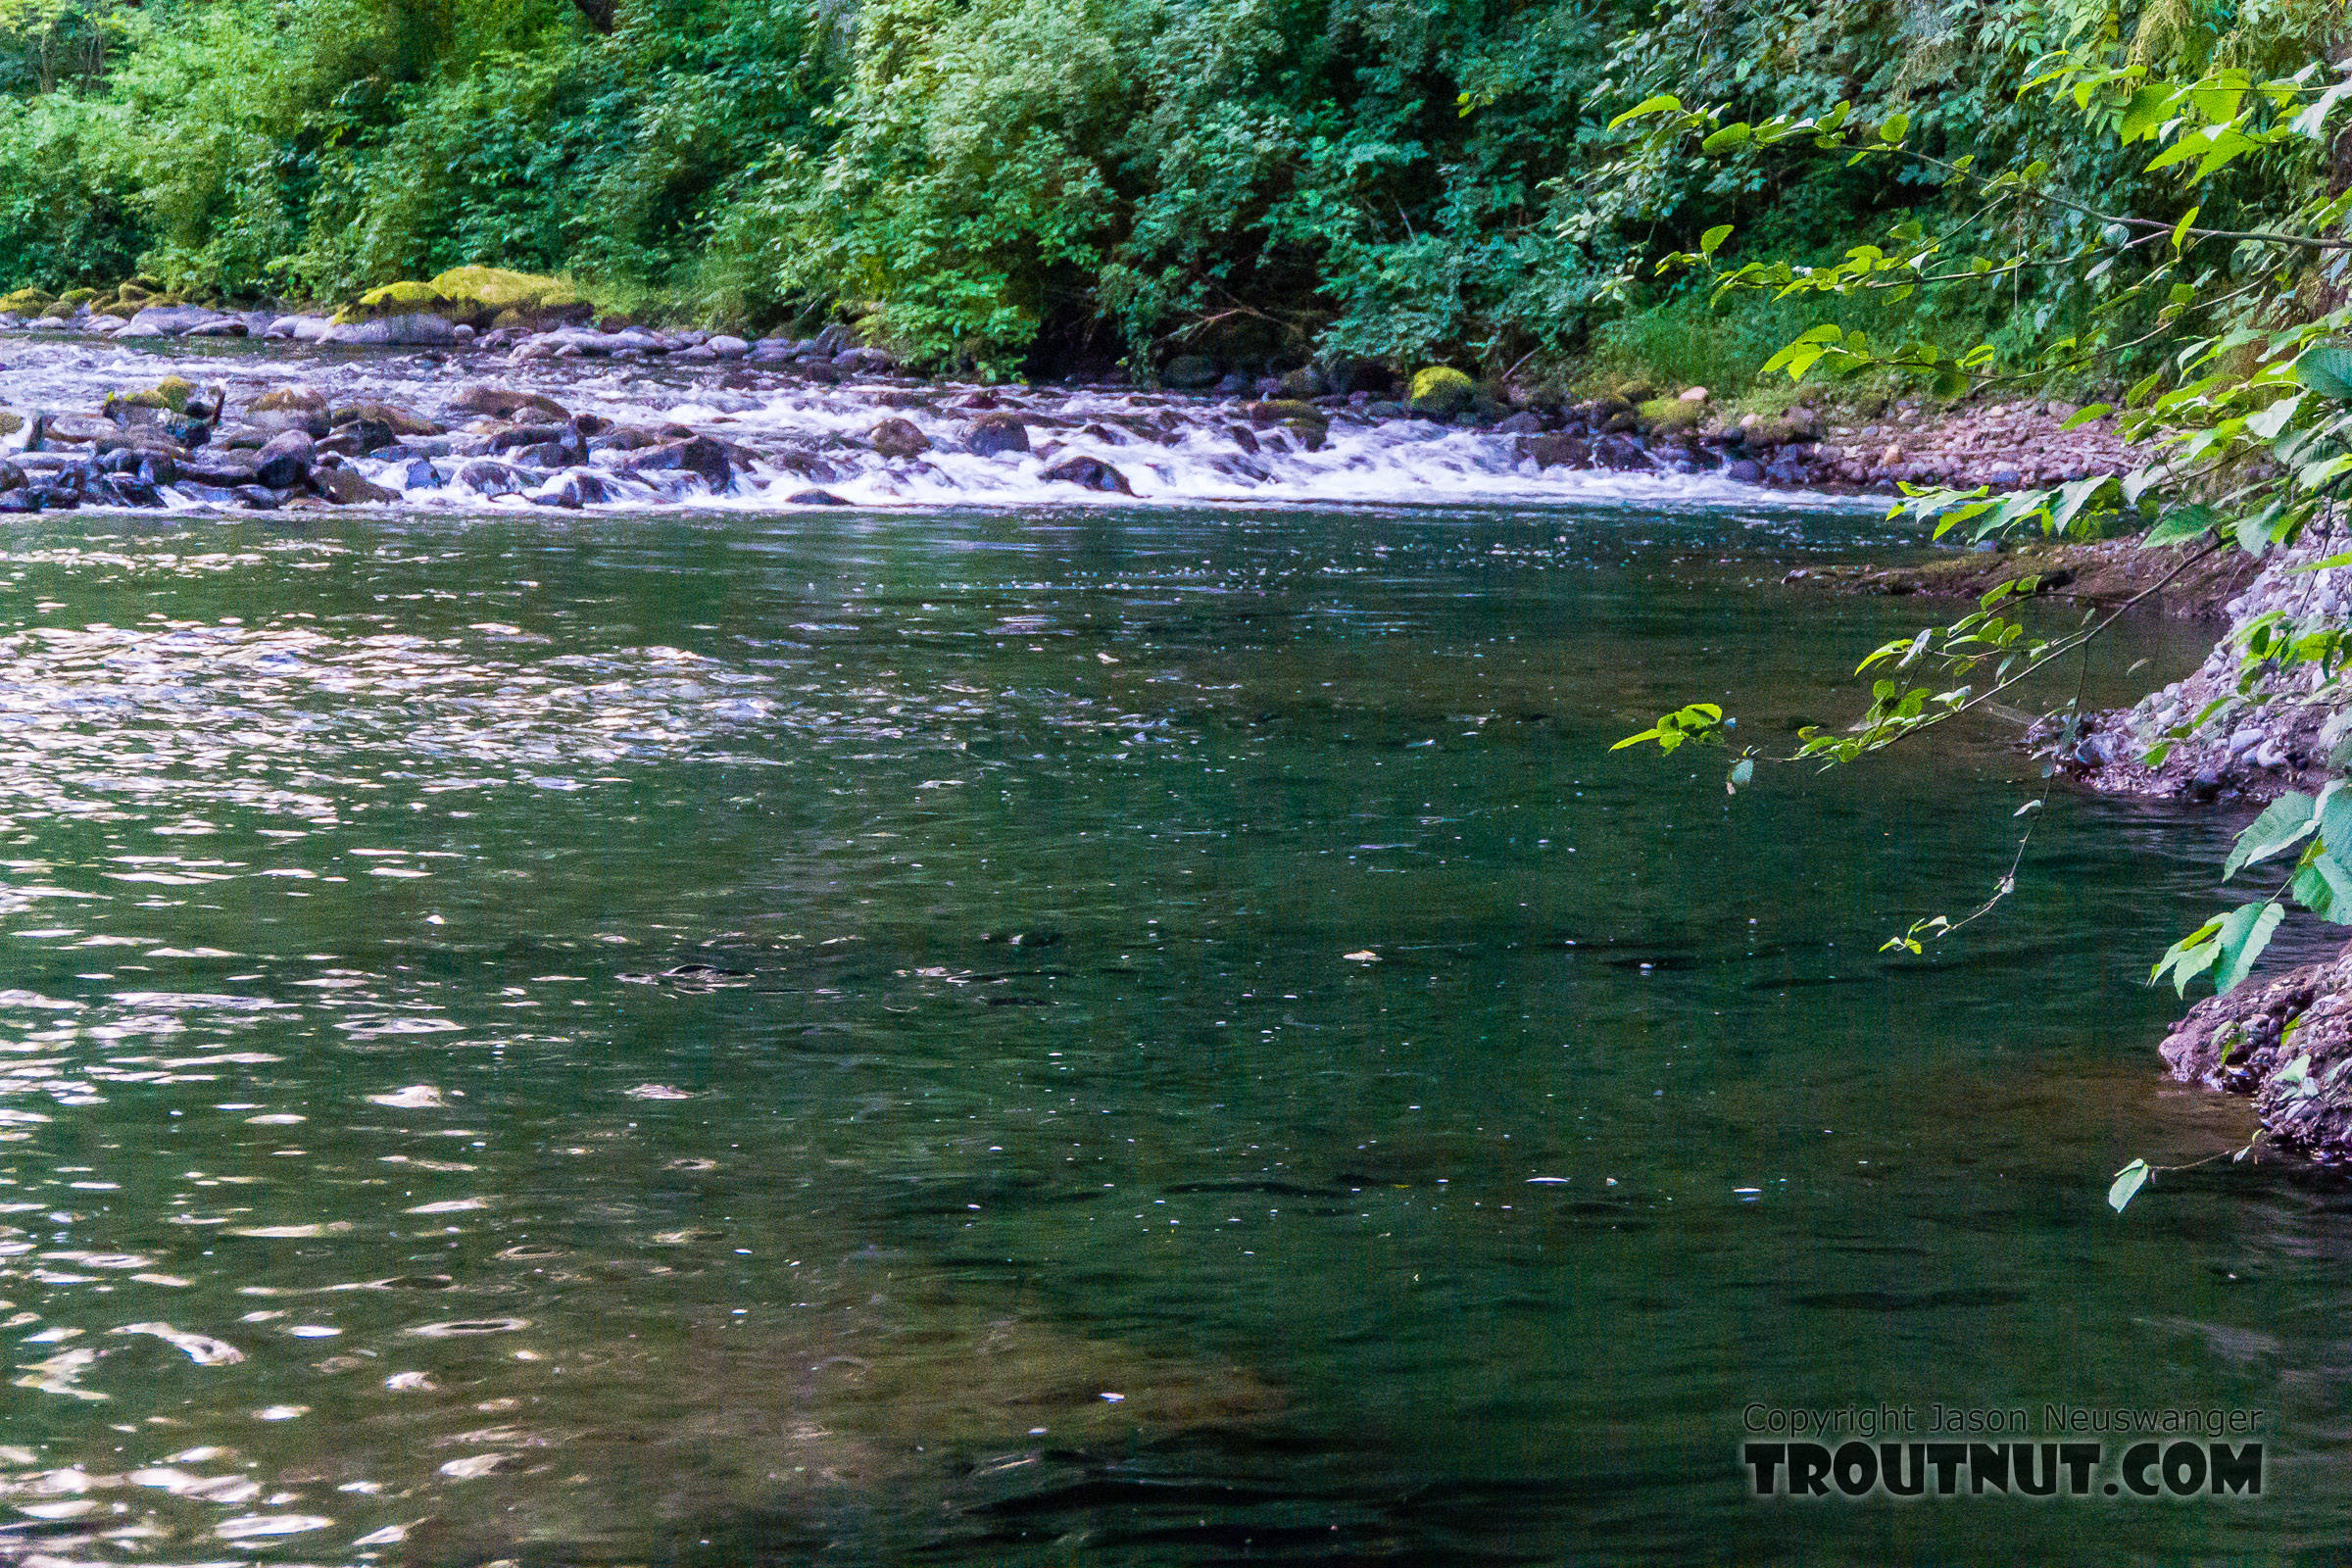 Picture from for Washington fly fishing forum